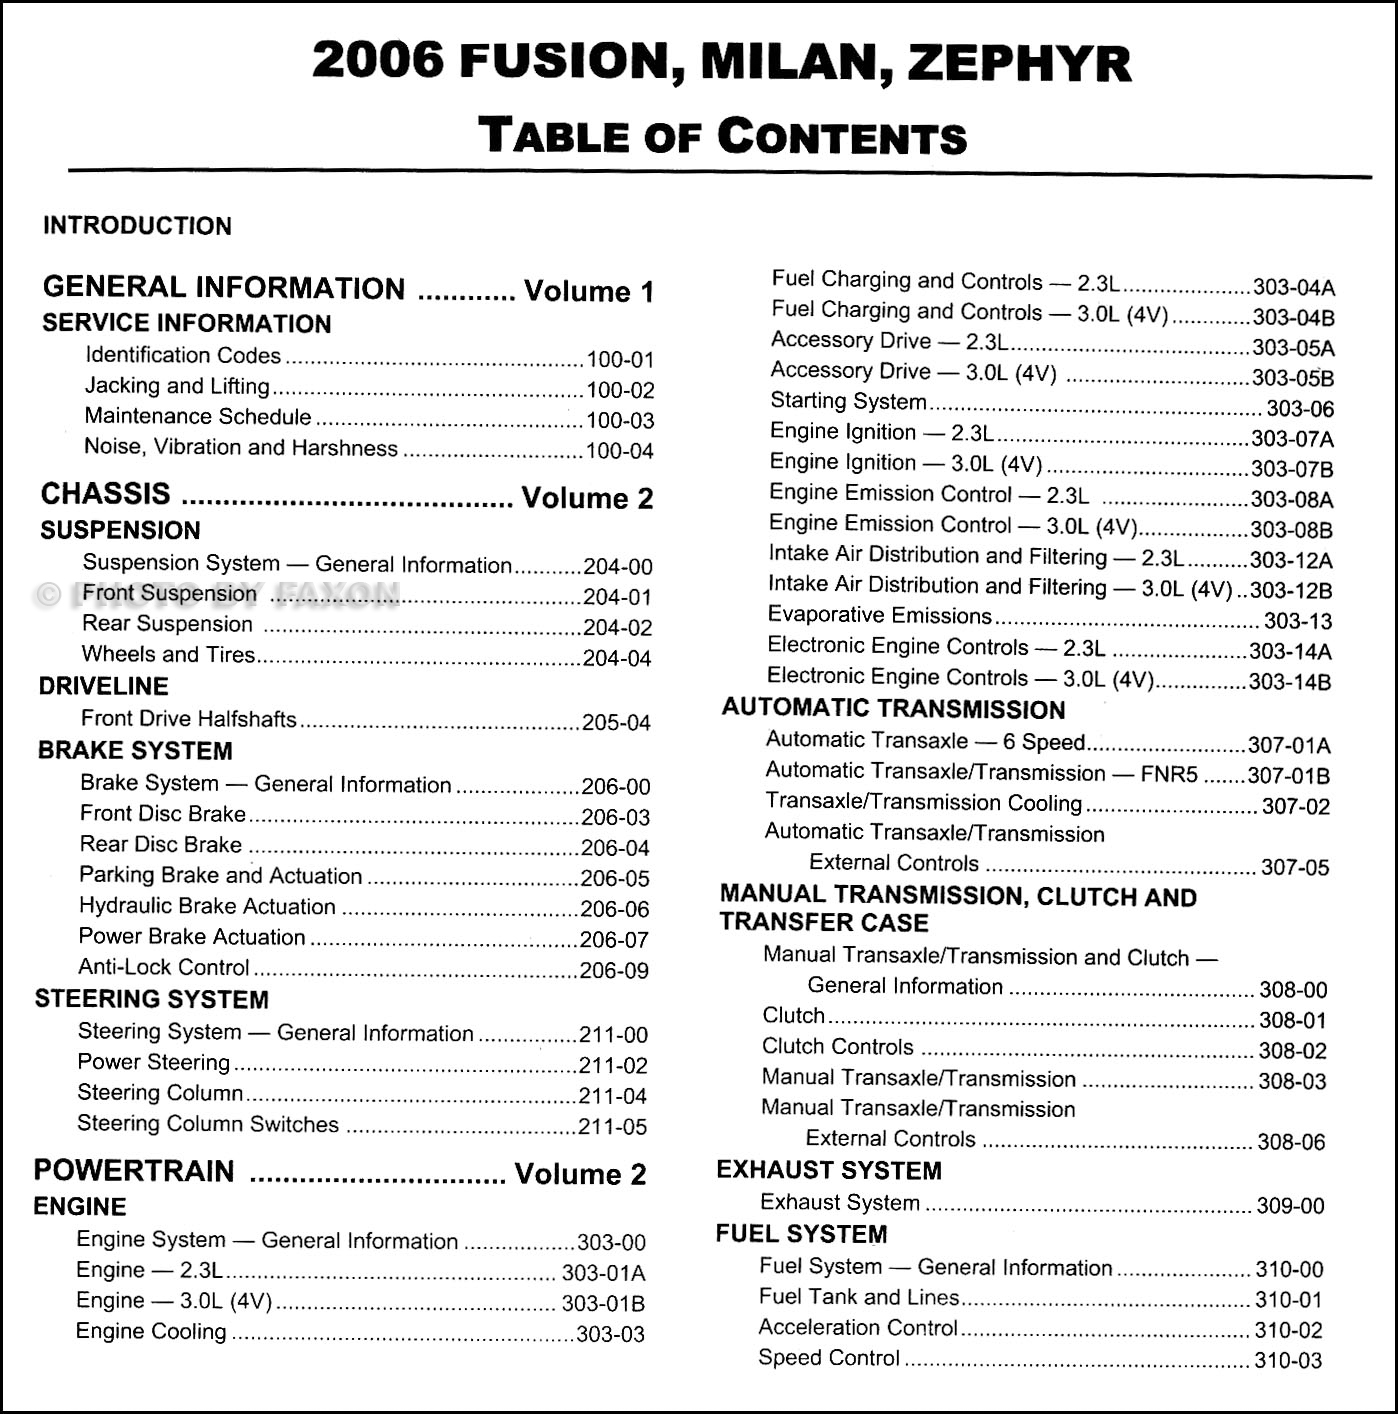 2006 Lincoln Zephyr Wiring Diagram Opinions About 2007 Mkx Engine Mercury Milan Fuse Box Pics 32 Images Diagrams Mifinder Co Isuzu Ascender Battery Junction